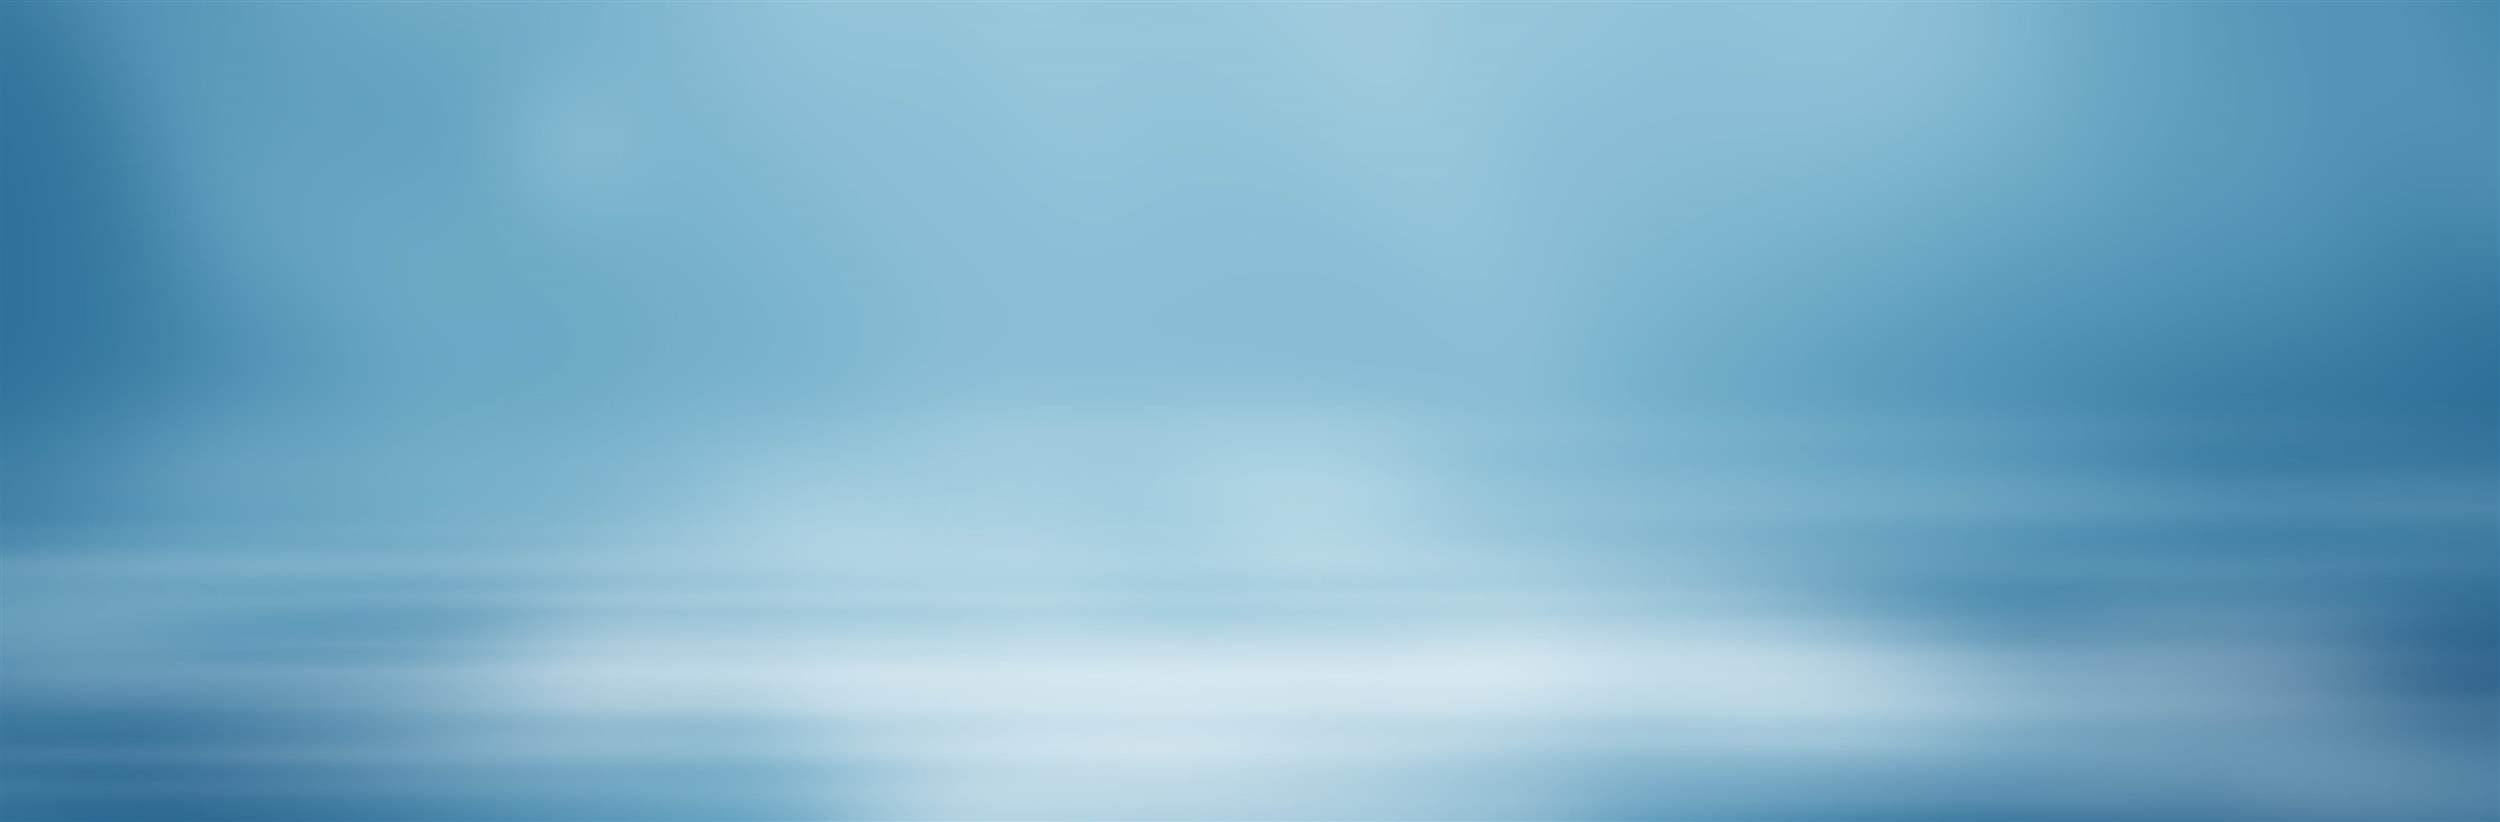 blue-empty-room-studio-gradient